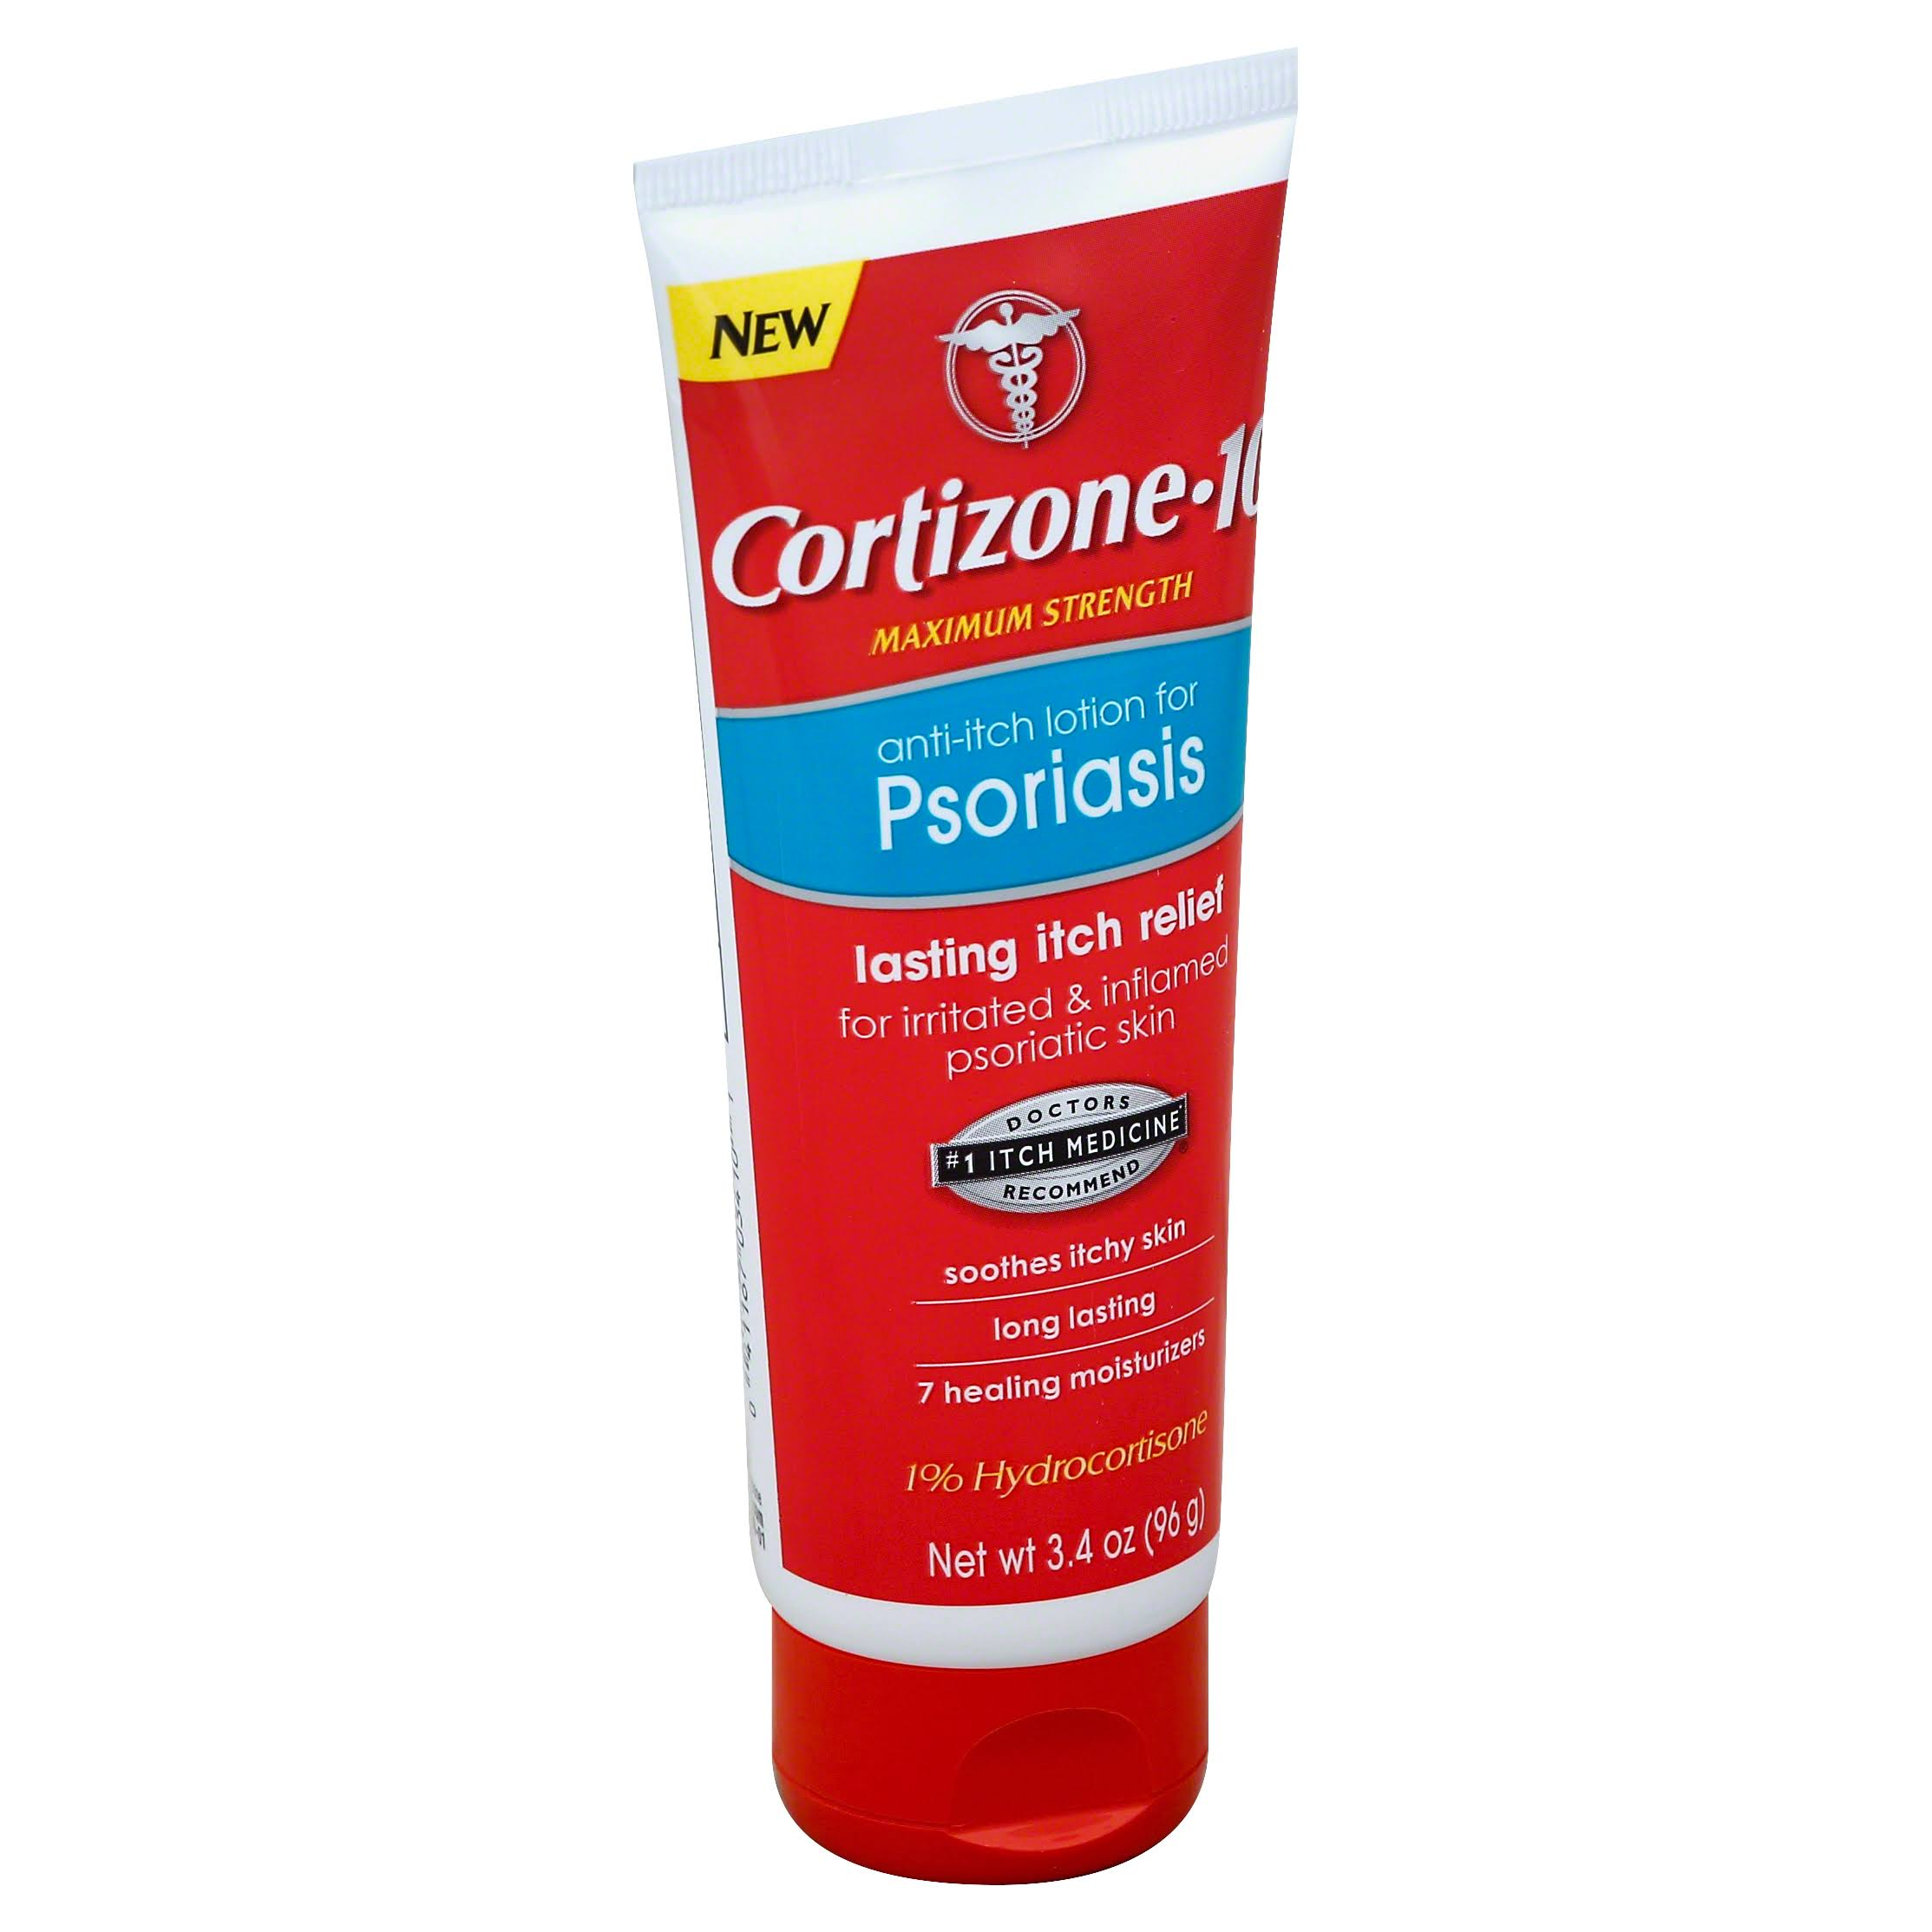 Cortizone 10 Anti-itch Psoriasis Lotion - 3.4oz